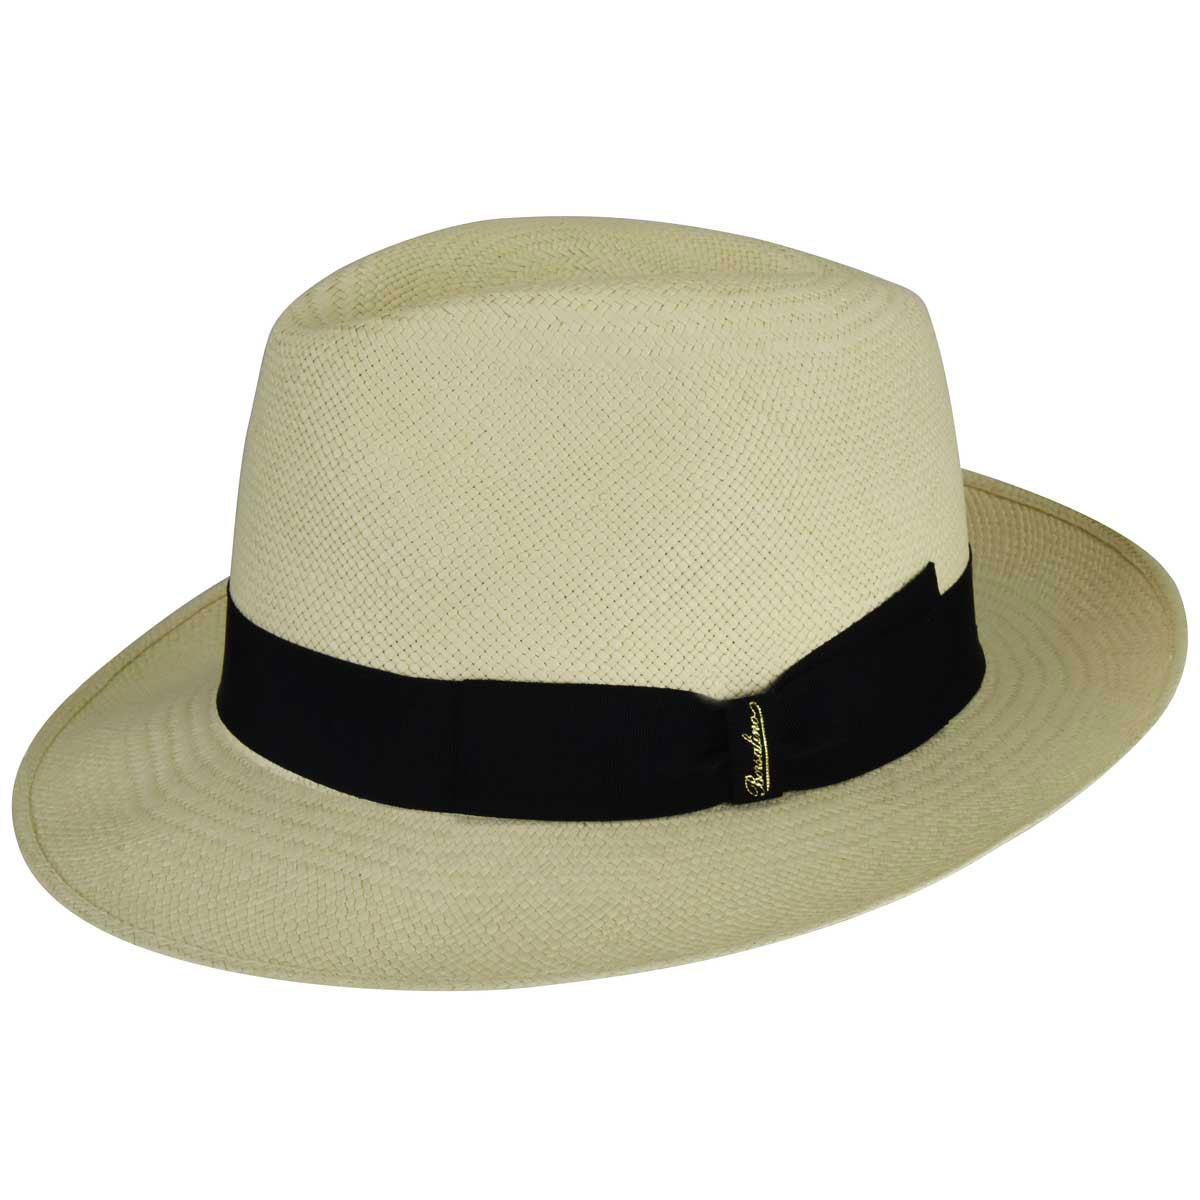 1930s Mens Hat Fashion Quito Panama Medium Brim Fedora $262.00 AT vintagedancer.com